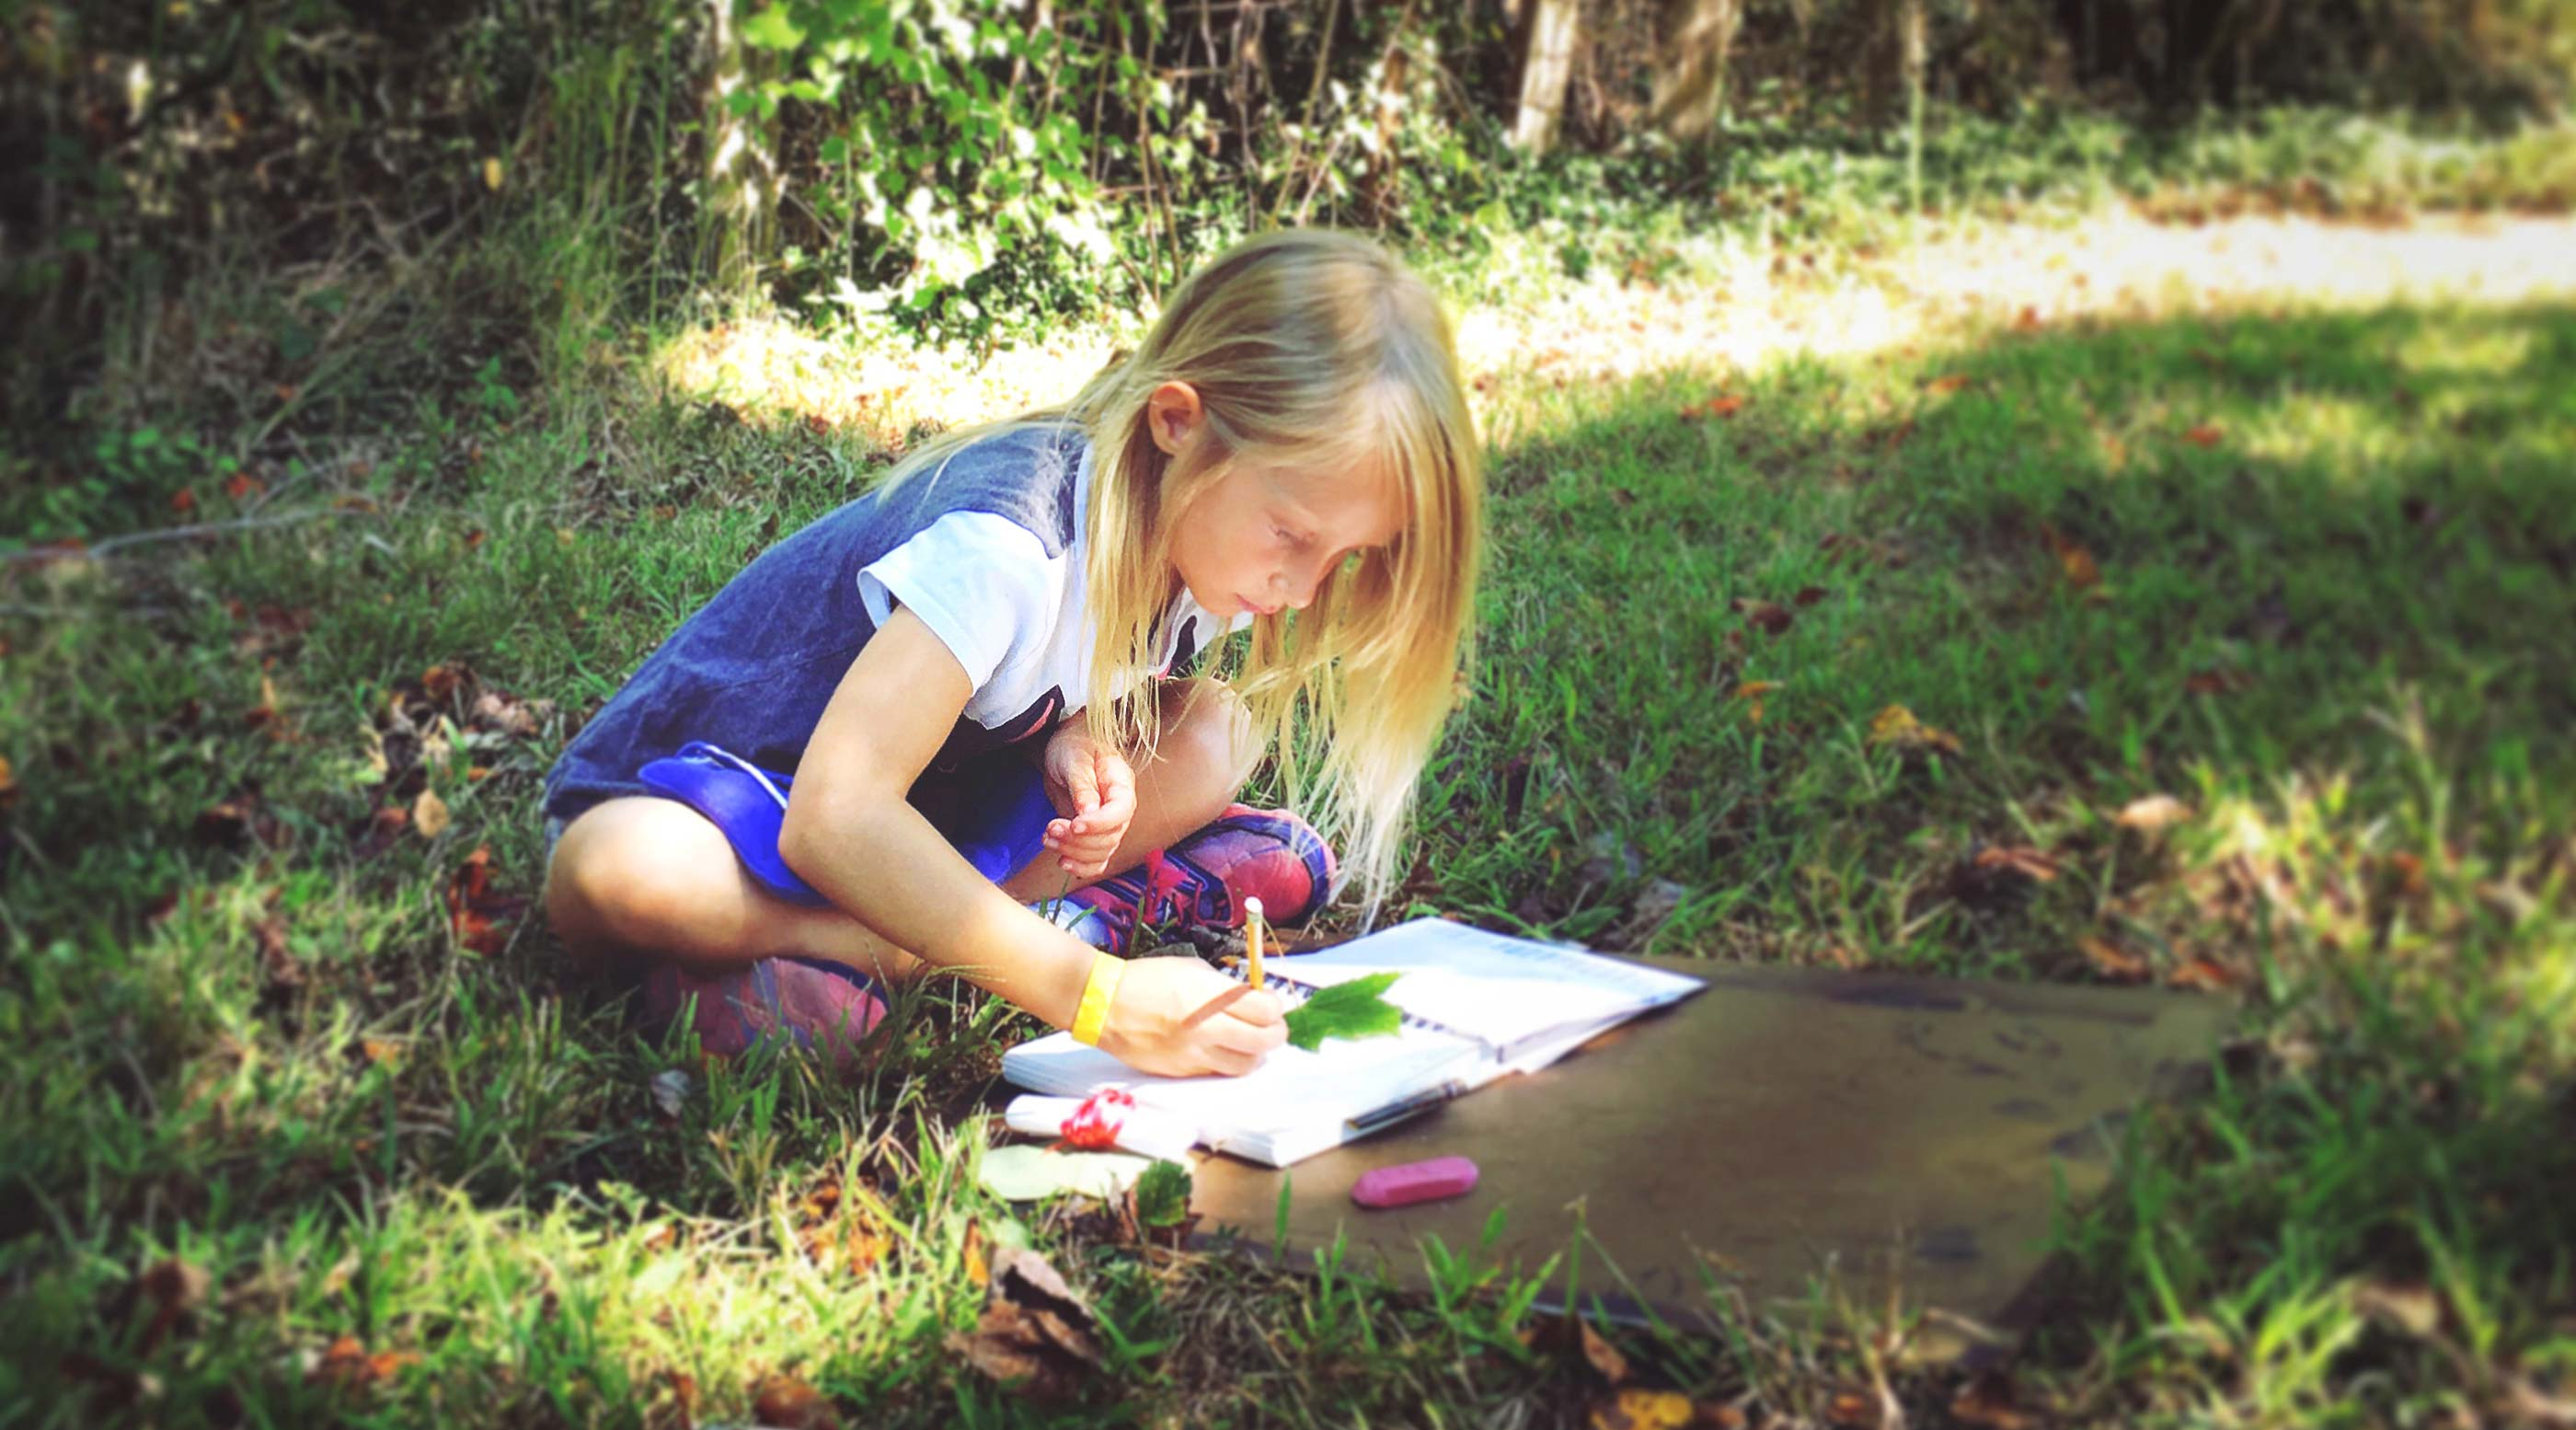 Girl works in her nature study workbook under the trees